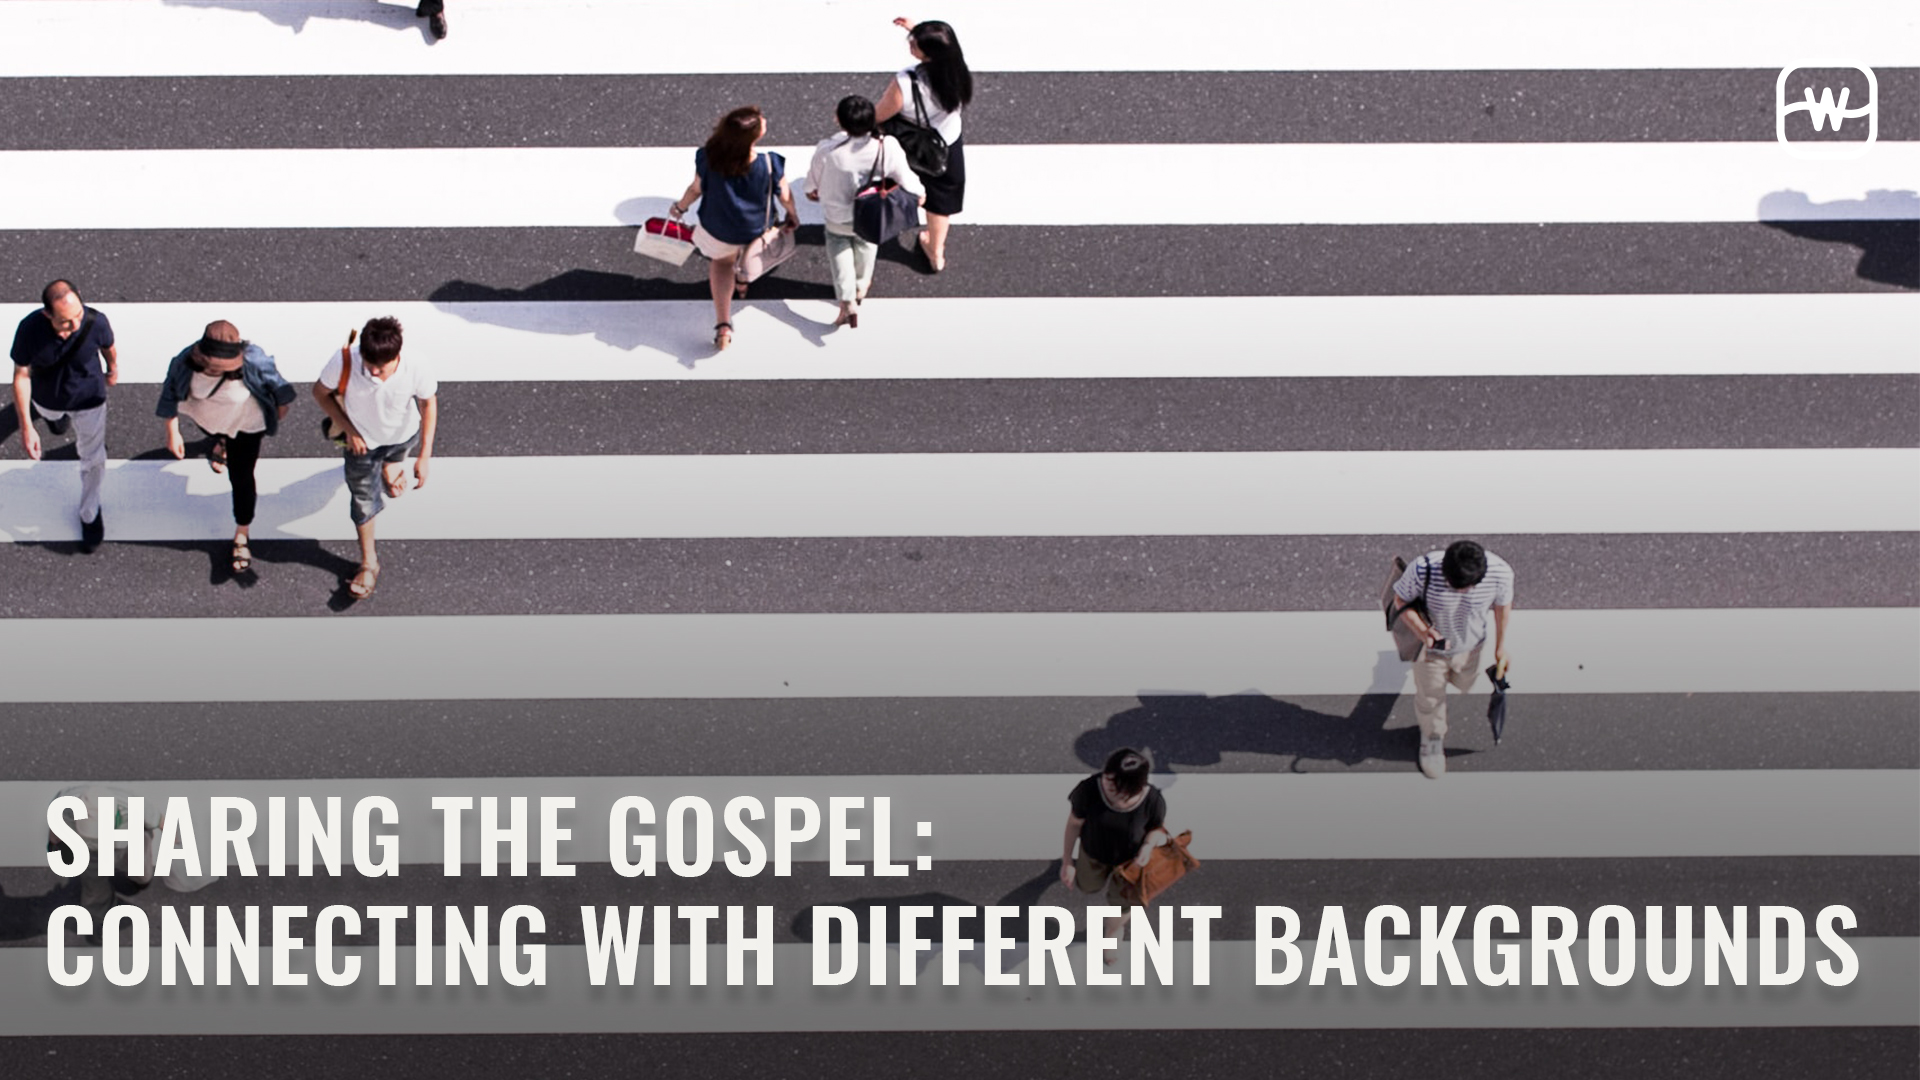 Sharing the Gospel: Connecting with Different Backgrounds Hero Image